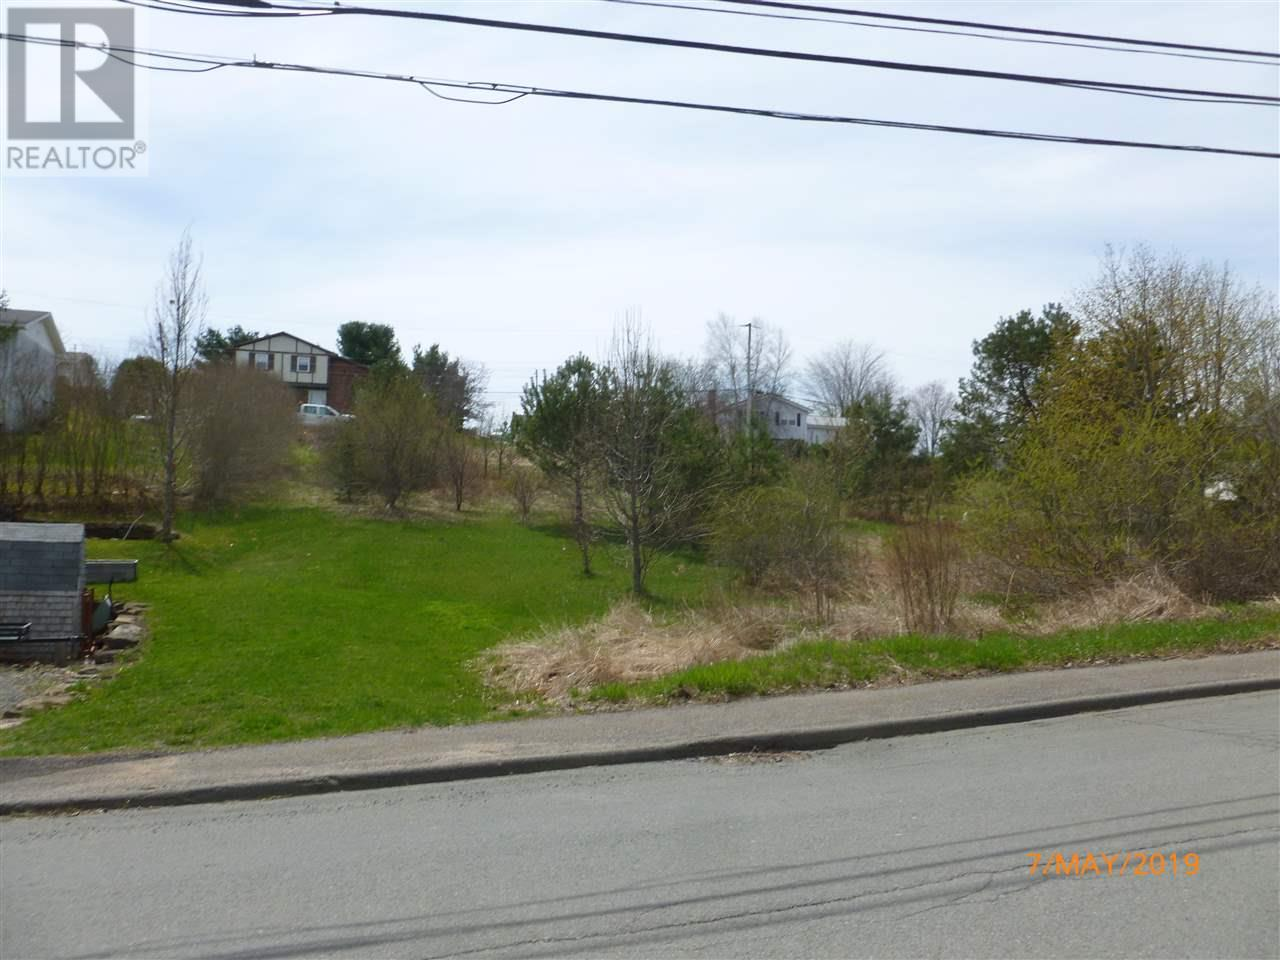 Lot 6 Rand Street, Hantsport, Nova Scotia  B0P 1P0 - Photo 2 - 201909969